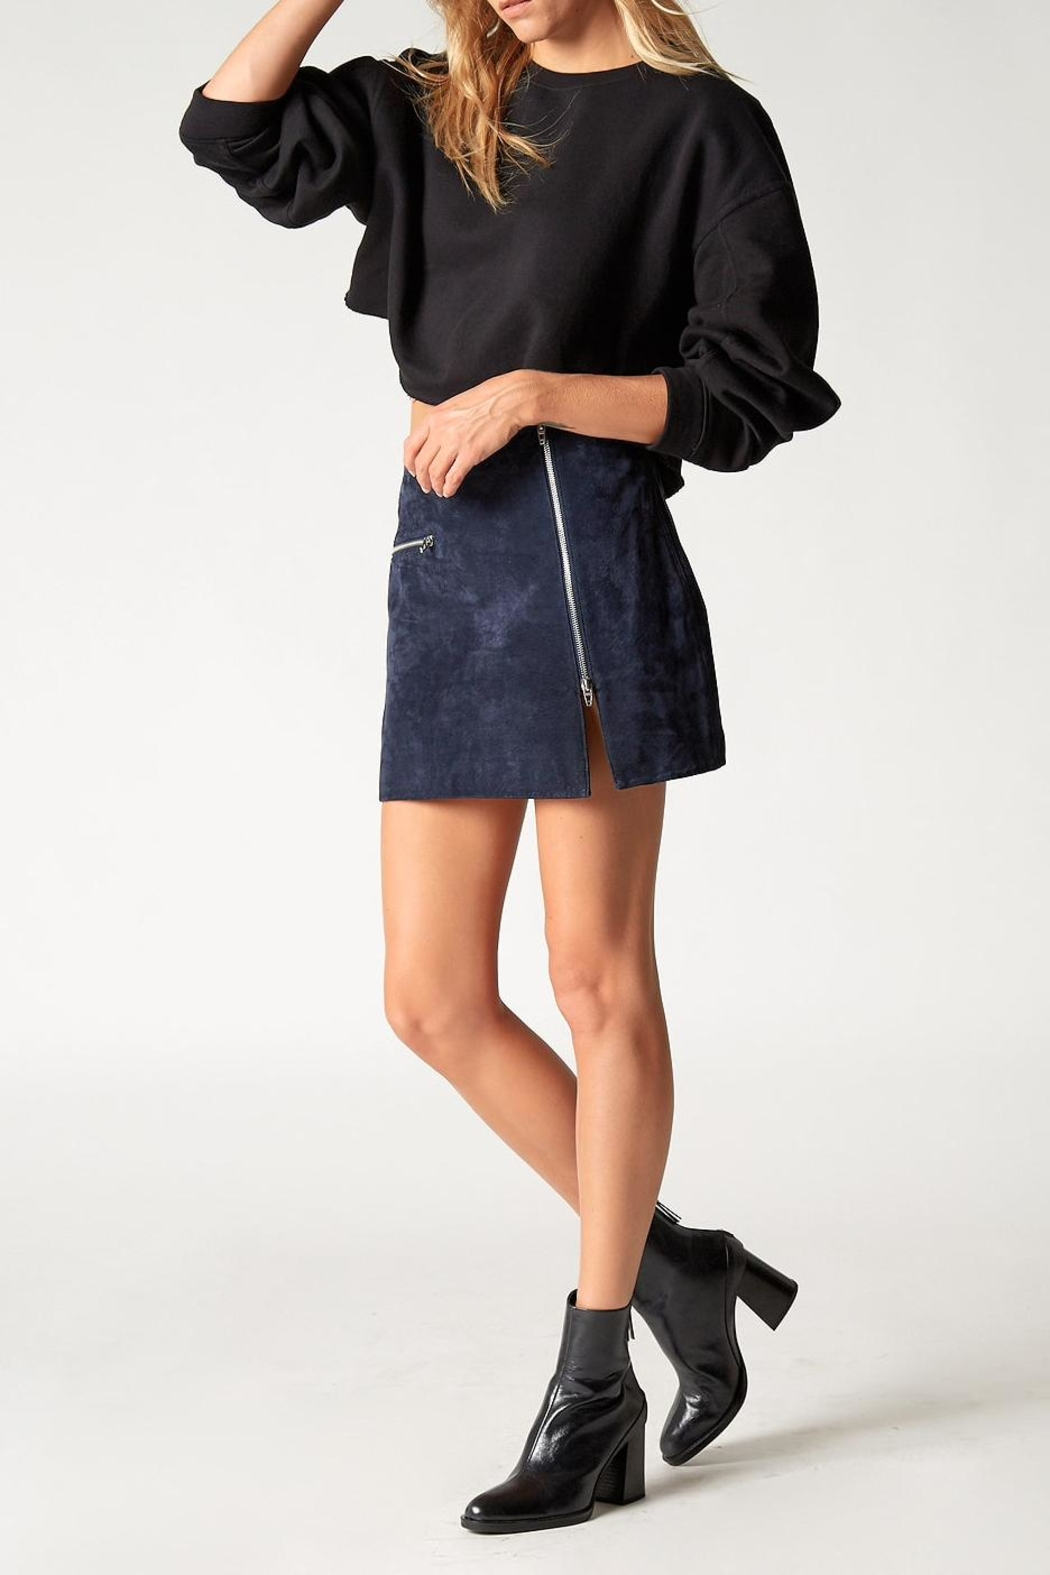 Blank NYC Blue Valentine Skirt - Back Cropped Image